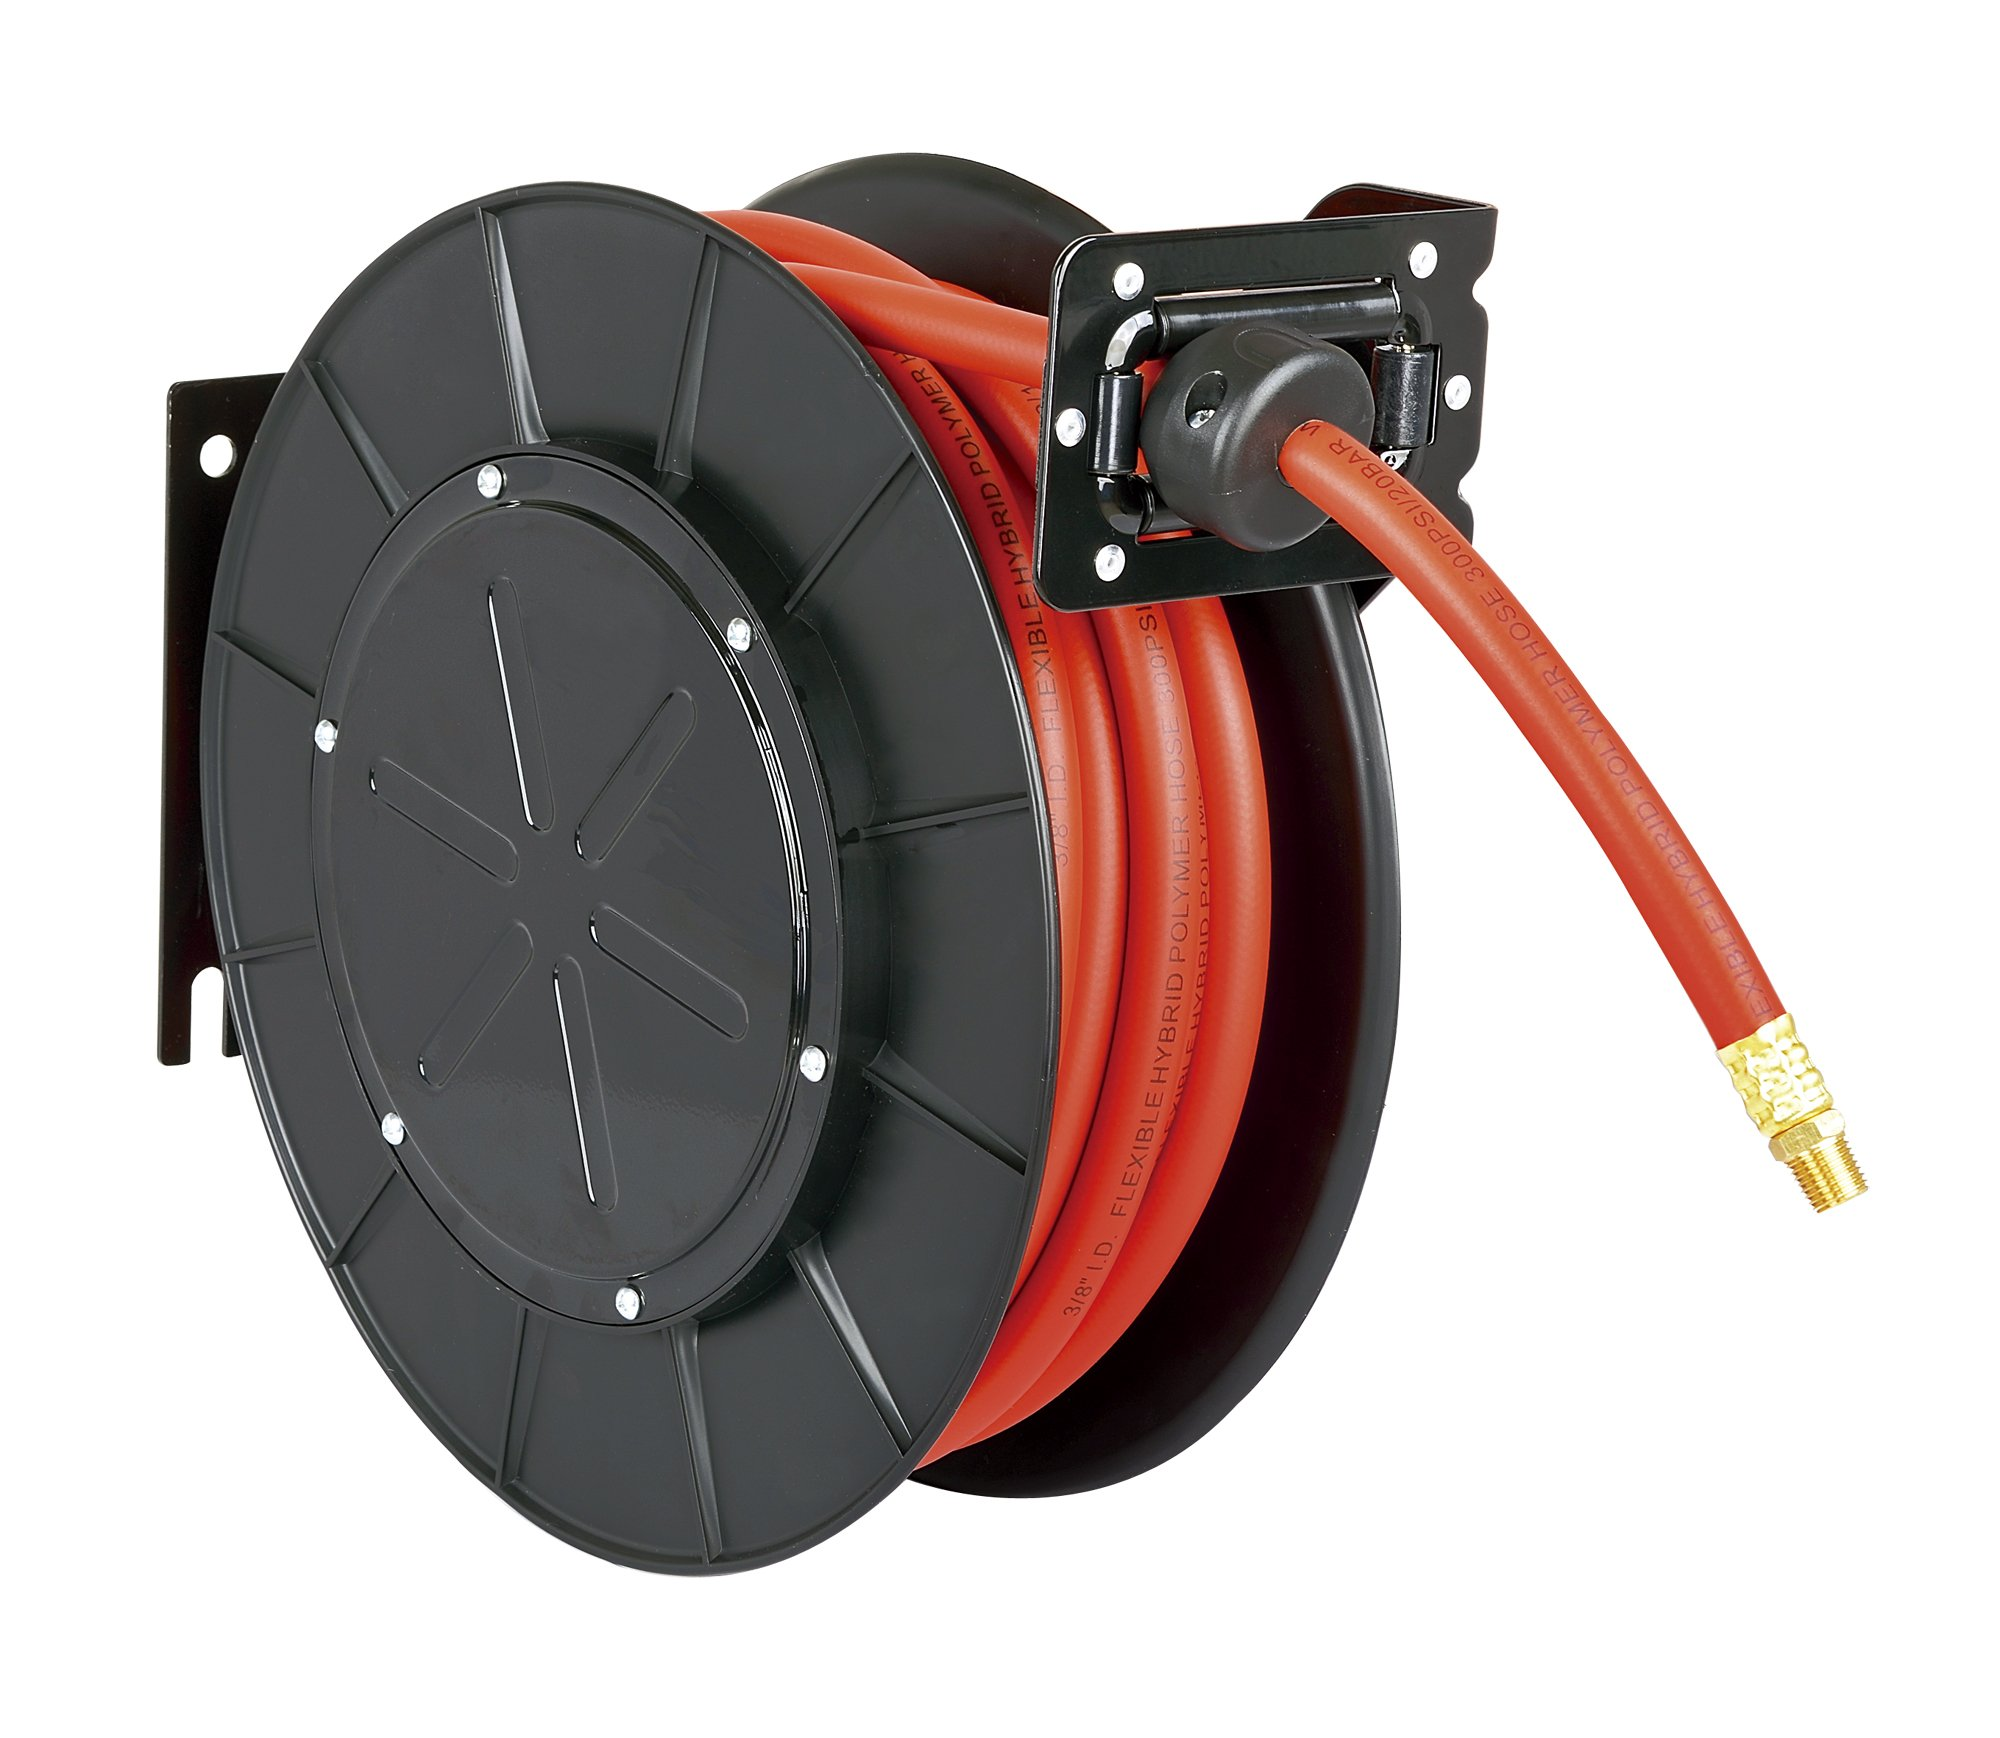 ReelWorks 28107153A Steel Retractable Air Compressor/Water Hose Reel with 3/8'' x 50' Hybrid Polymer Hose, Max. 300 psi